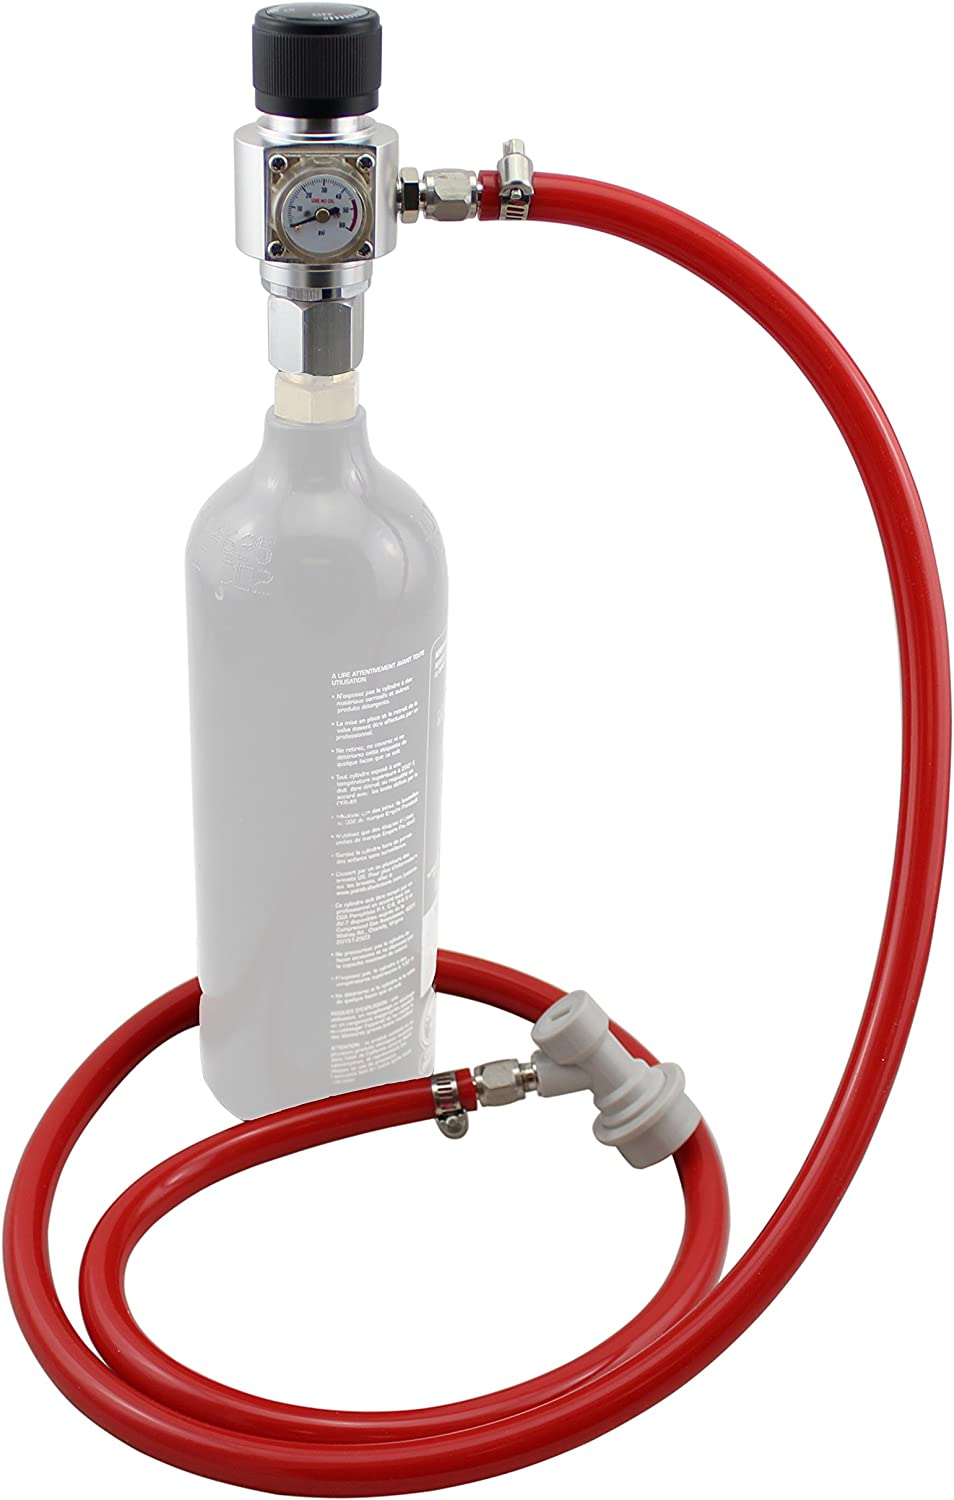 CO2 Injection System for Paintball Tanks by The Weekend Brewer